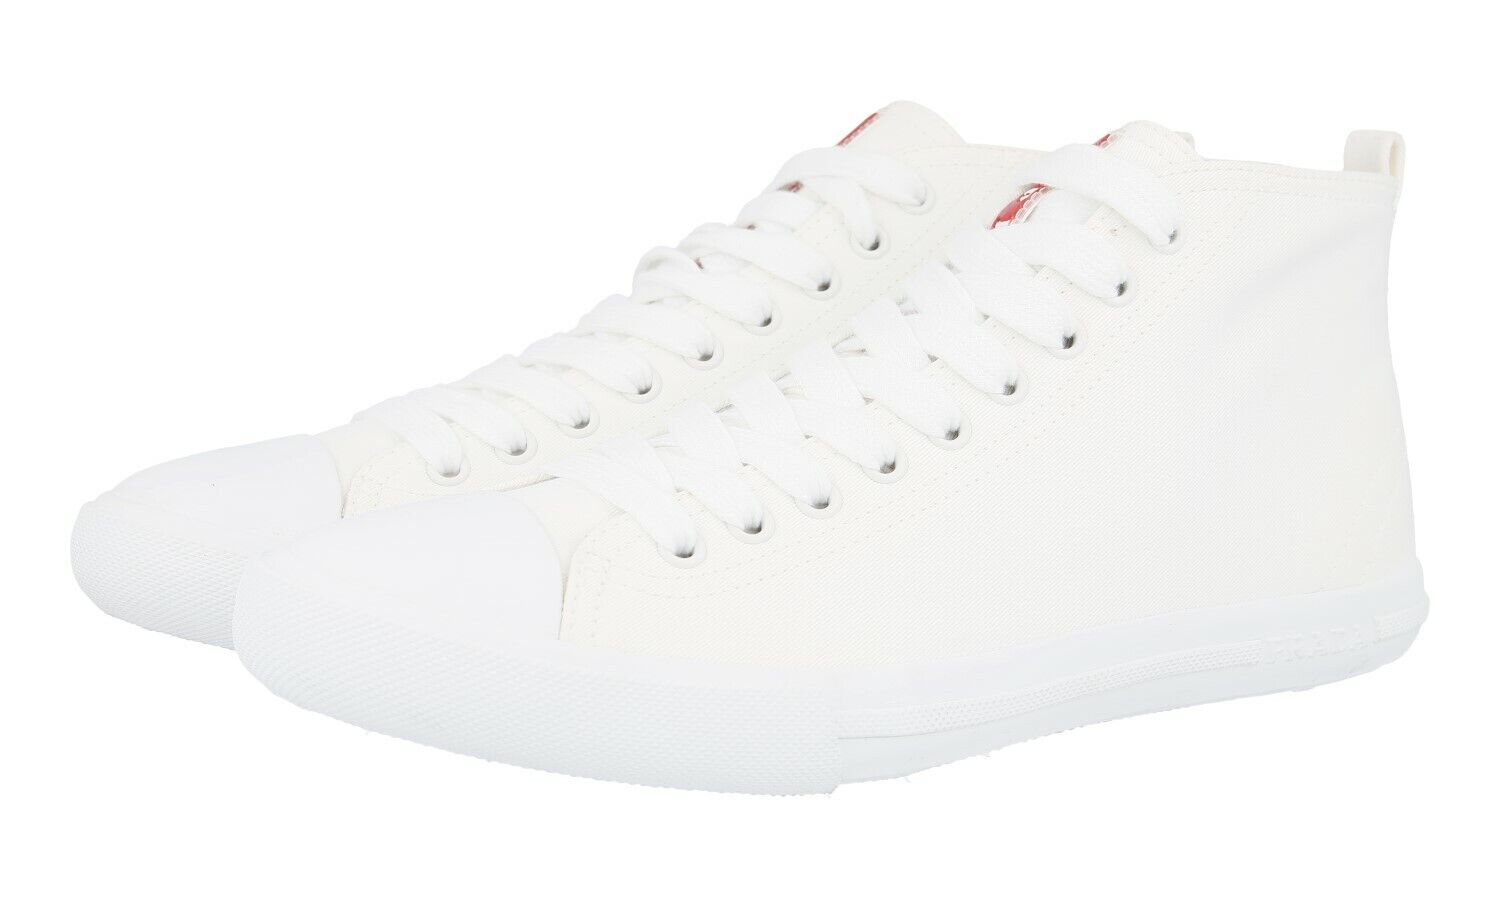 shoes HIGH-TOP SNEAKER PRADA LUSSO 4T2583 BIANCO NUOVE 6,5 40,5 41